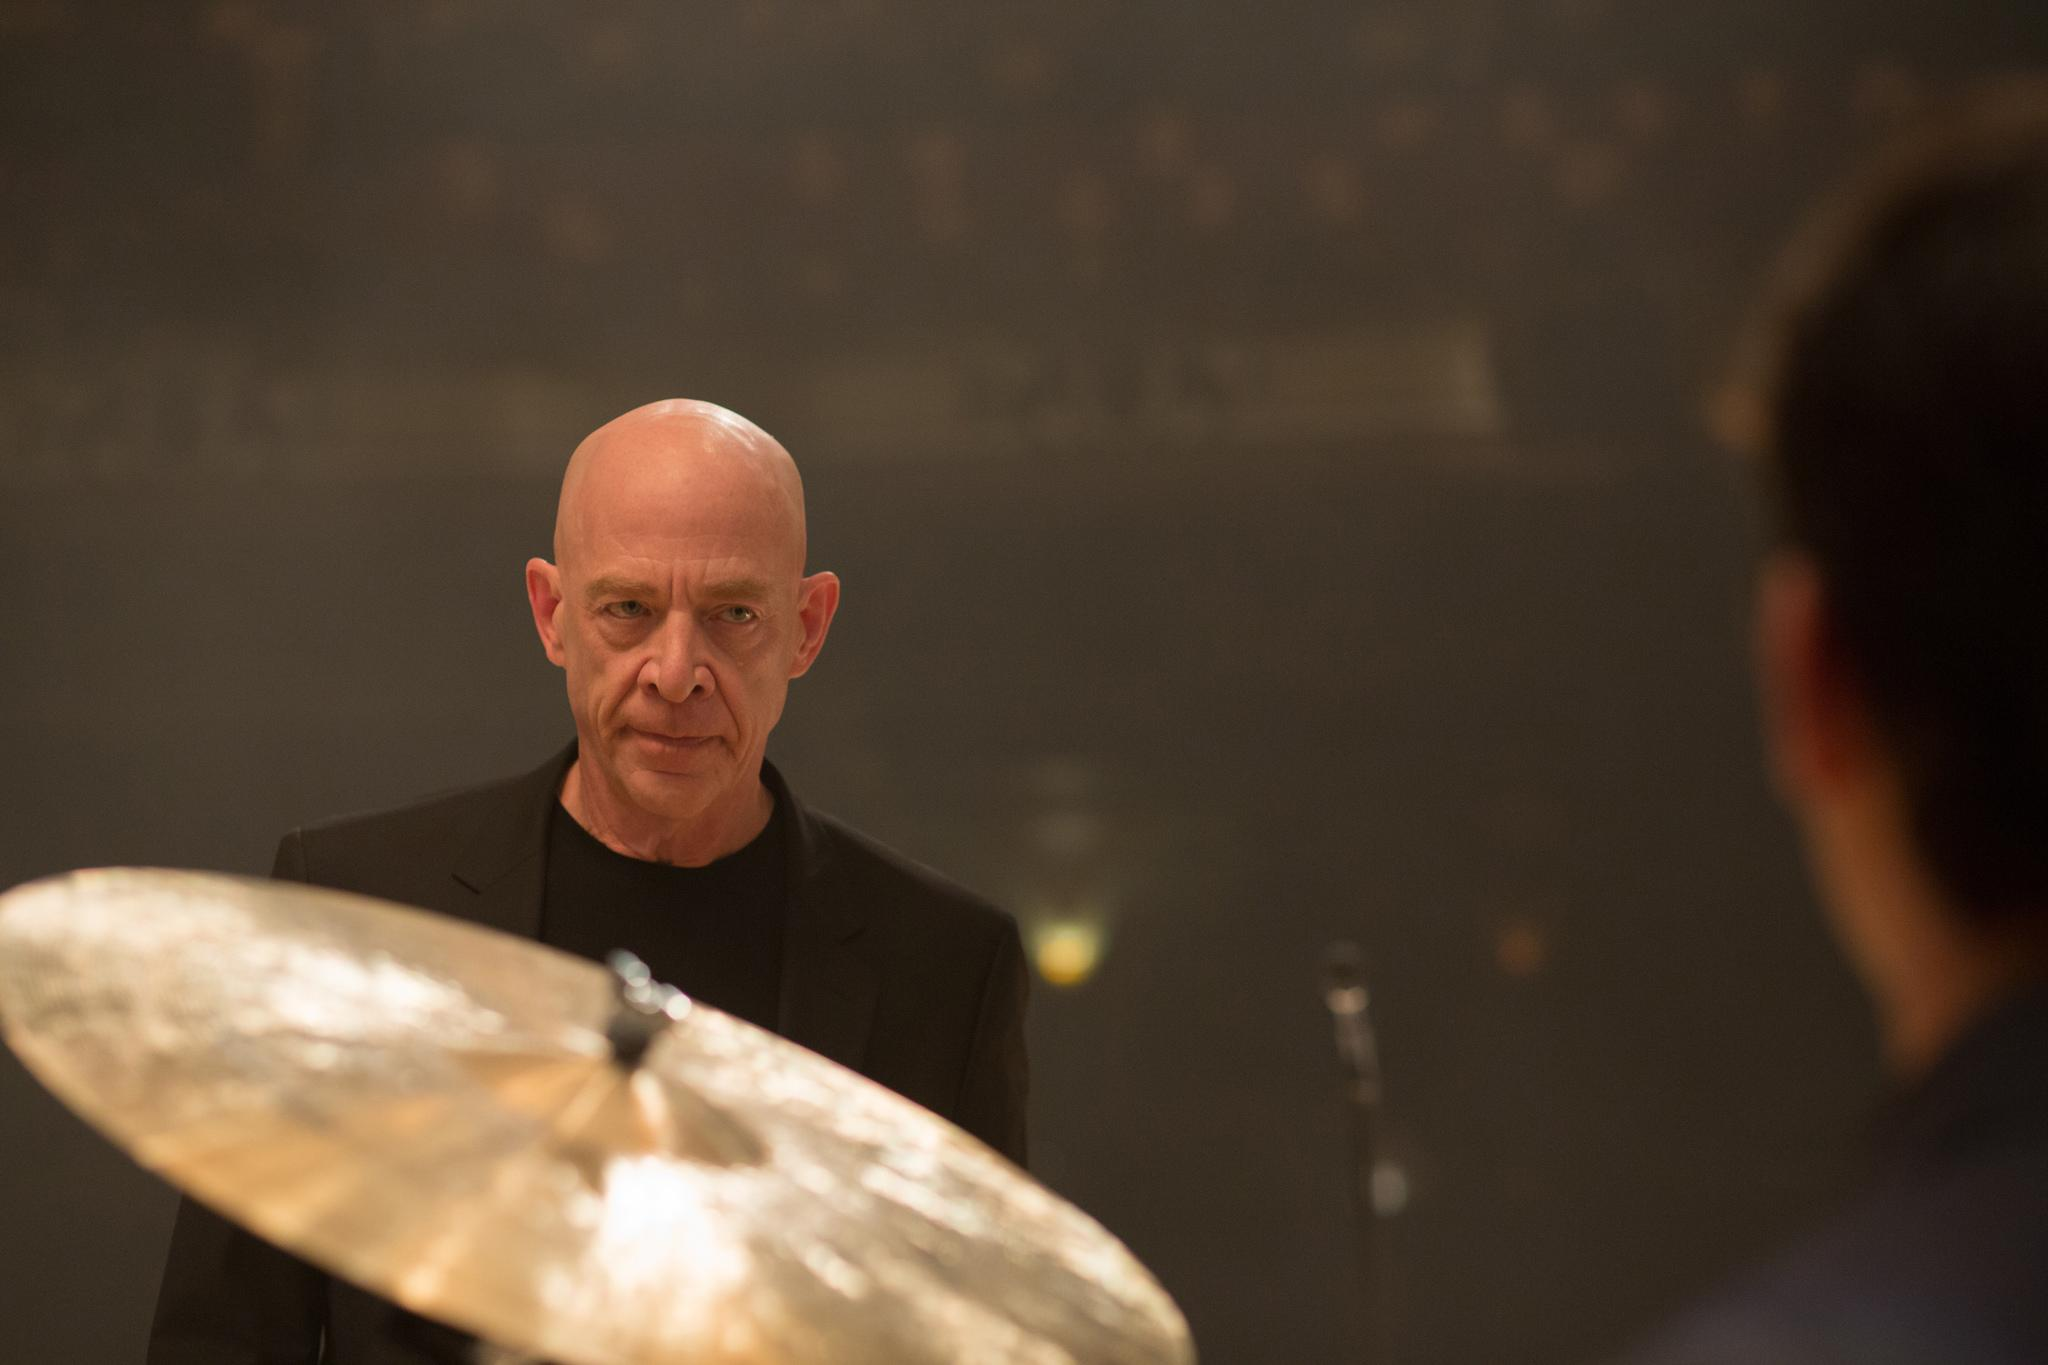 clairestbearestreviews_filmreview_whiplash_jksimmons1.jpg